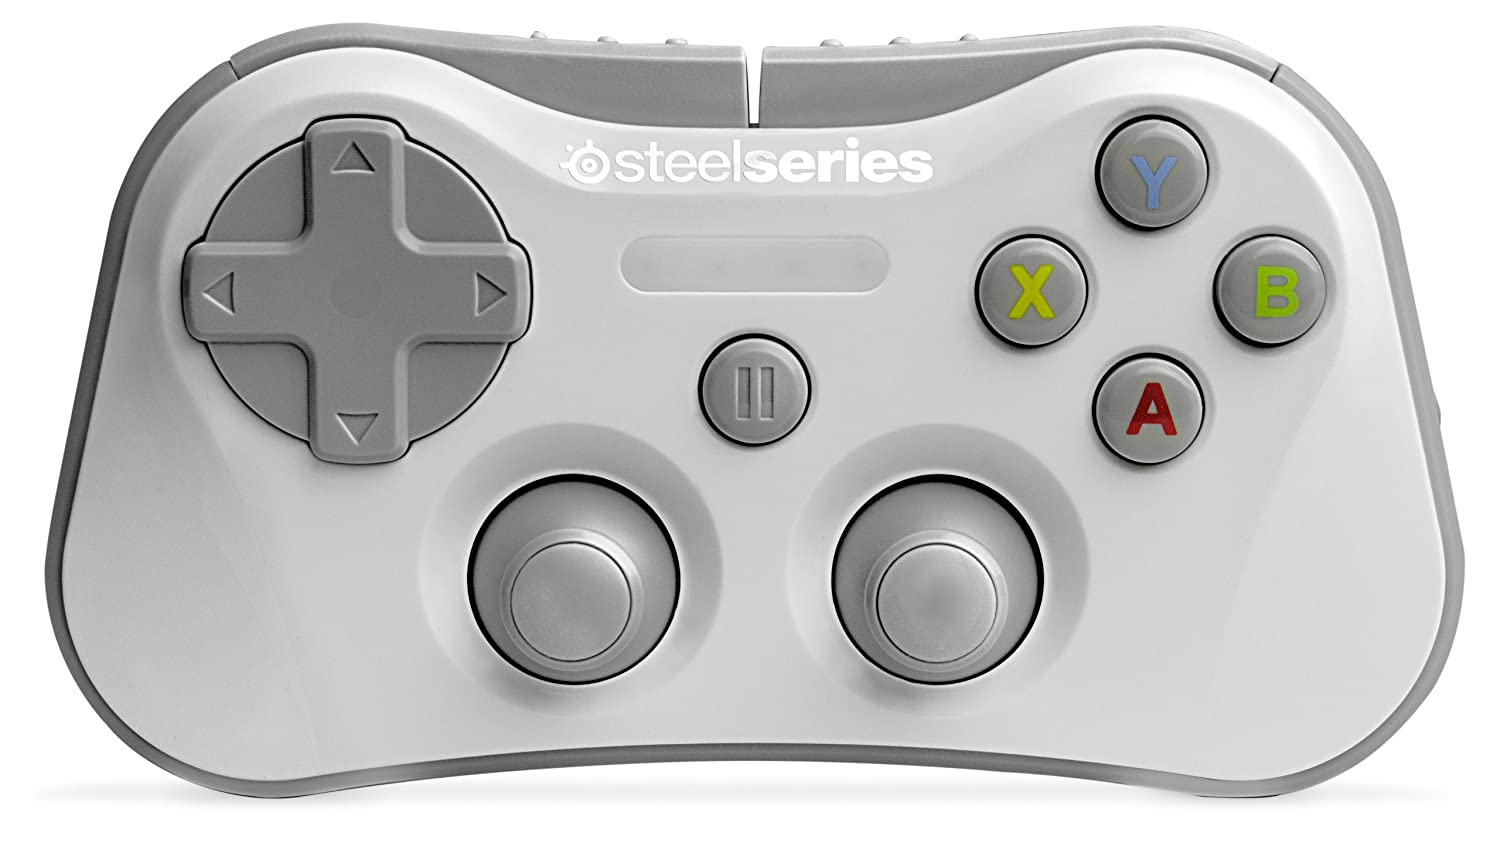 Steelseries STRATUS CONTROLLER COLOR BLANCO RESISTENTE DURADERO RESISTENTE DURADERO SteelSeries IT Direct 69017